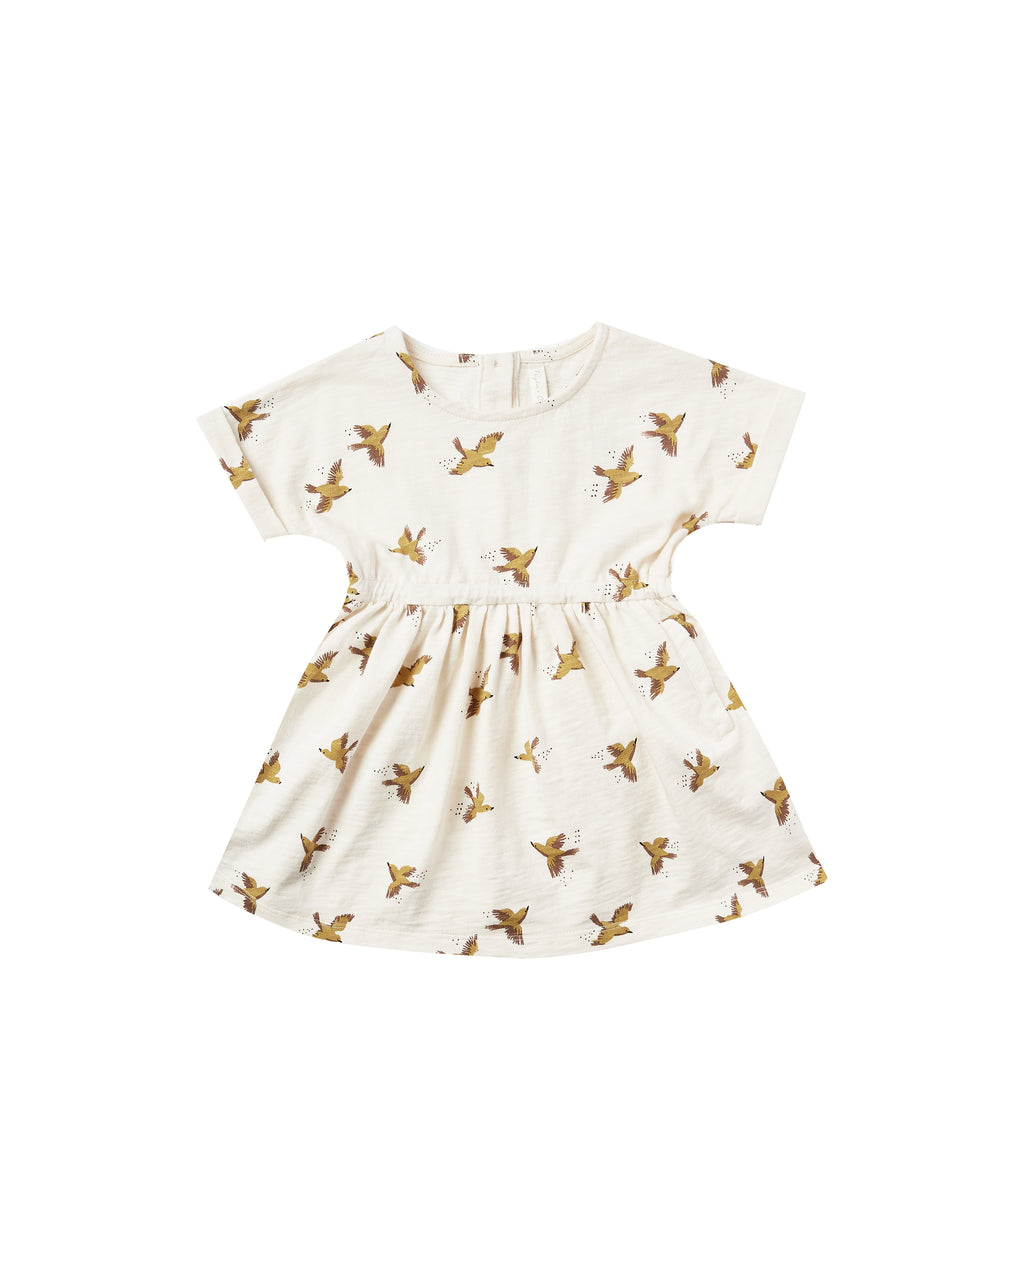 Rylee + Cru Songbirds Kat Dress - Ivory